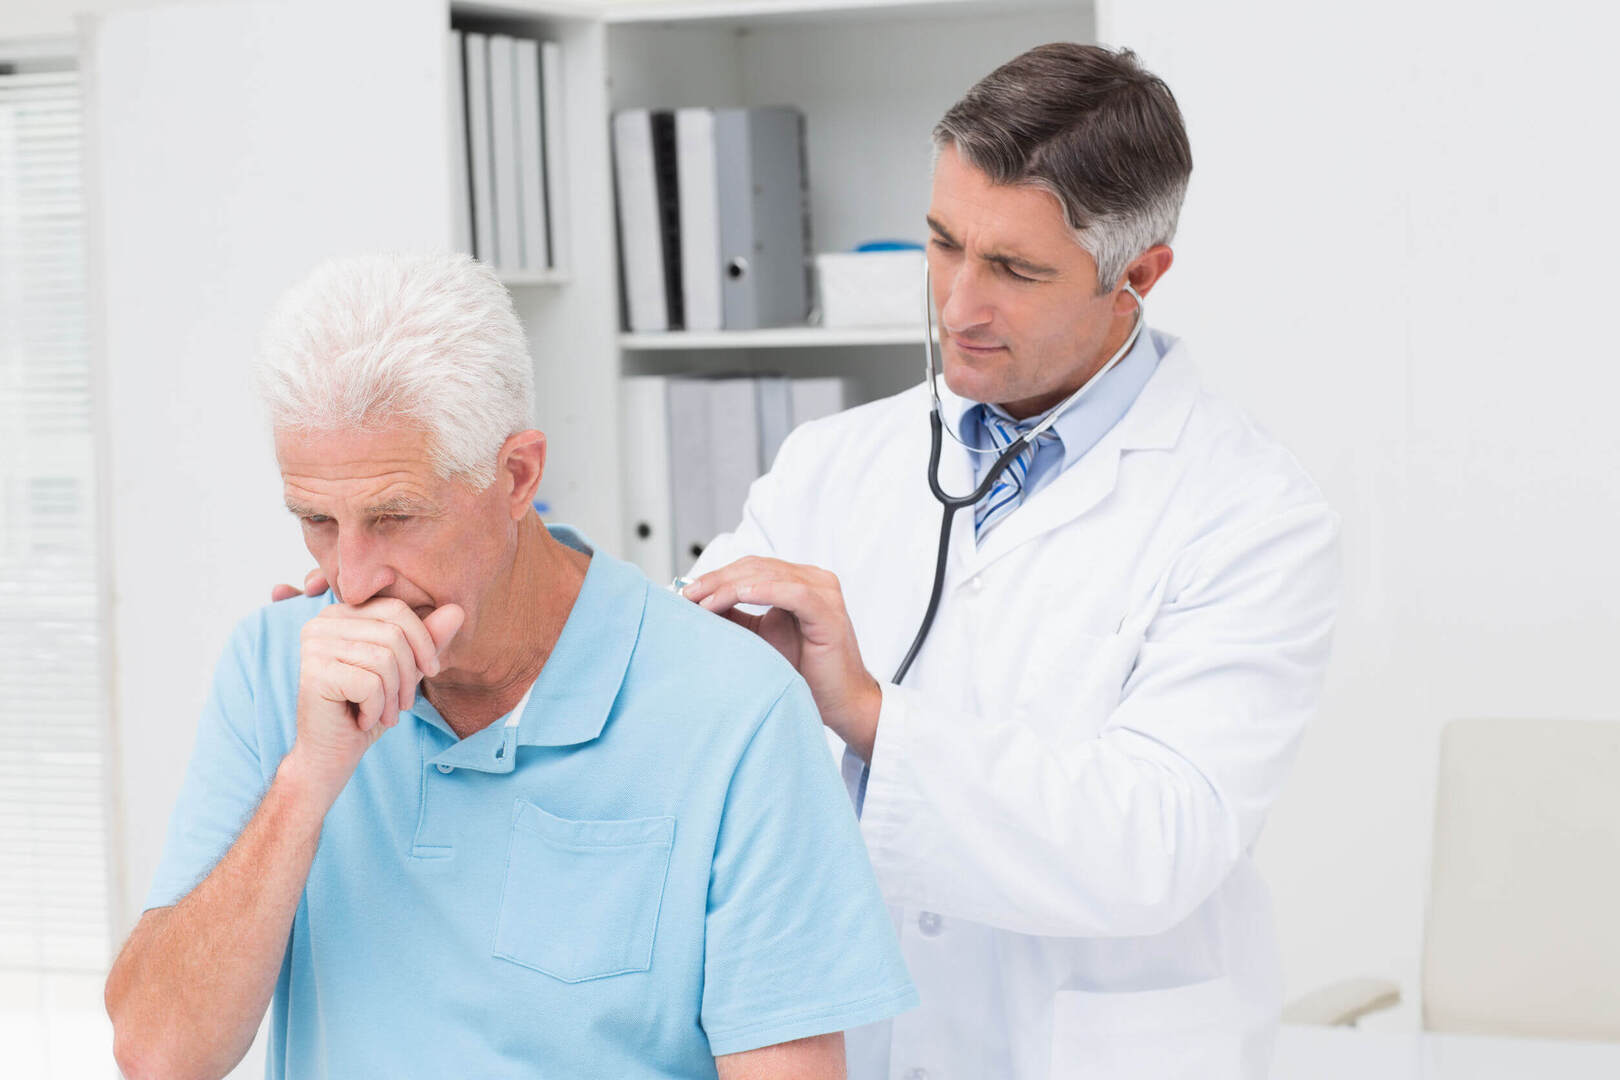 Older coughing patient checking in with doctor